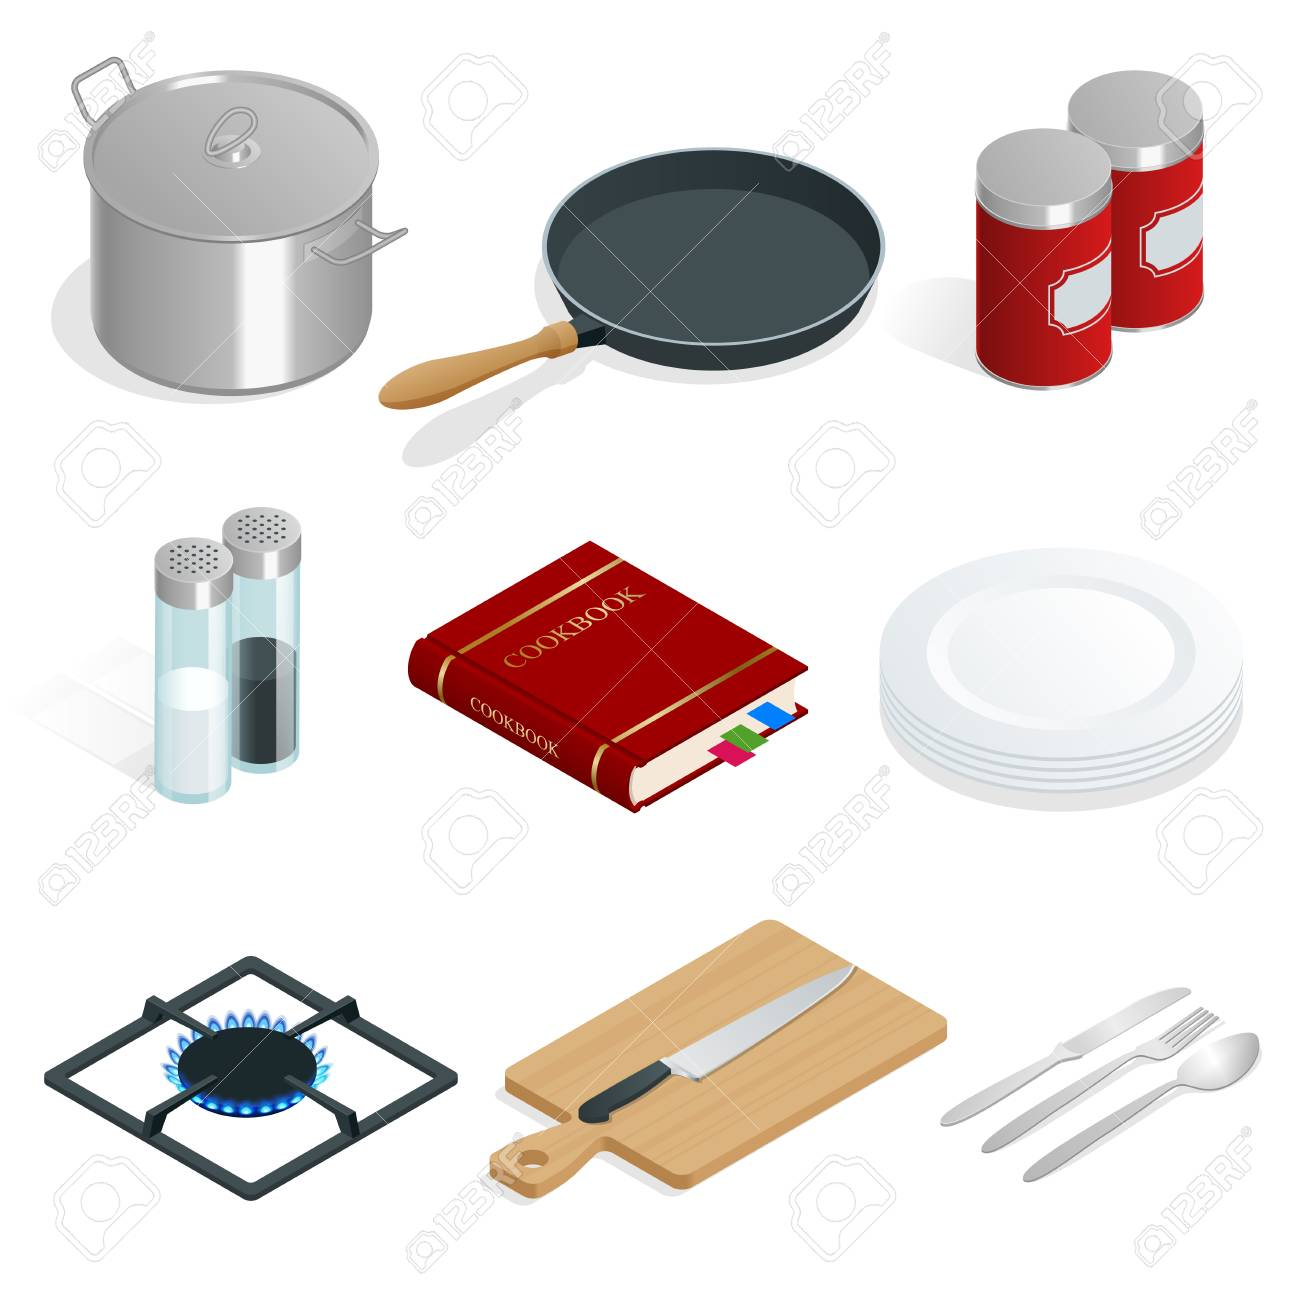 Isometric vector set of professional kitchenware and utensils on white background. - 88774409